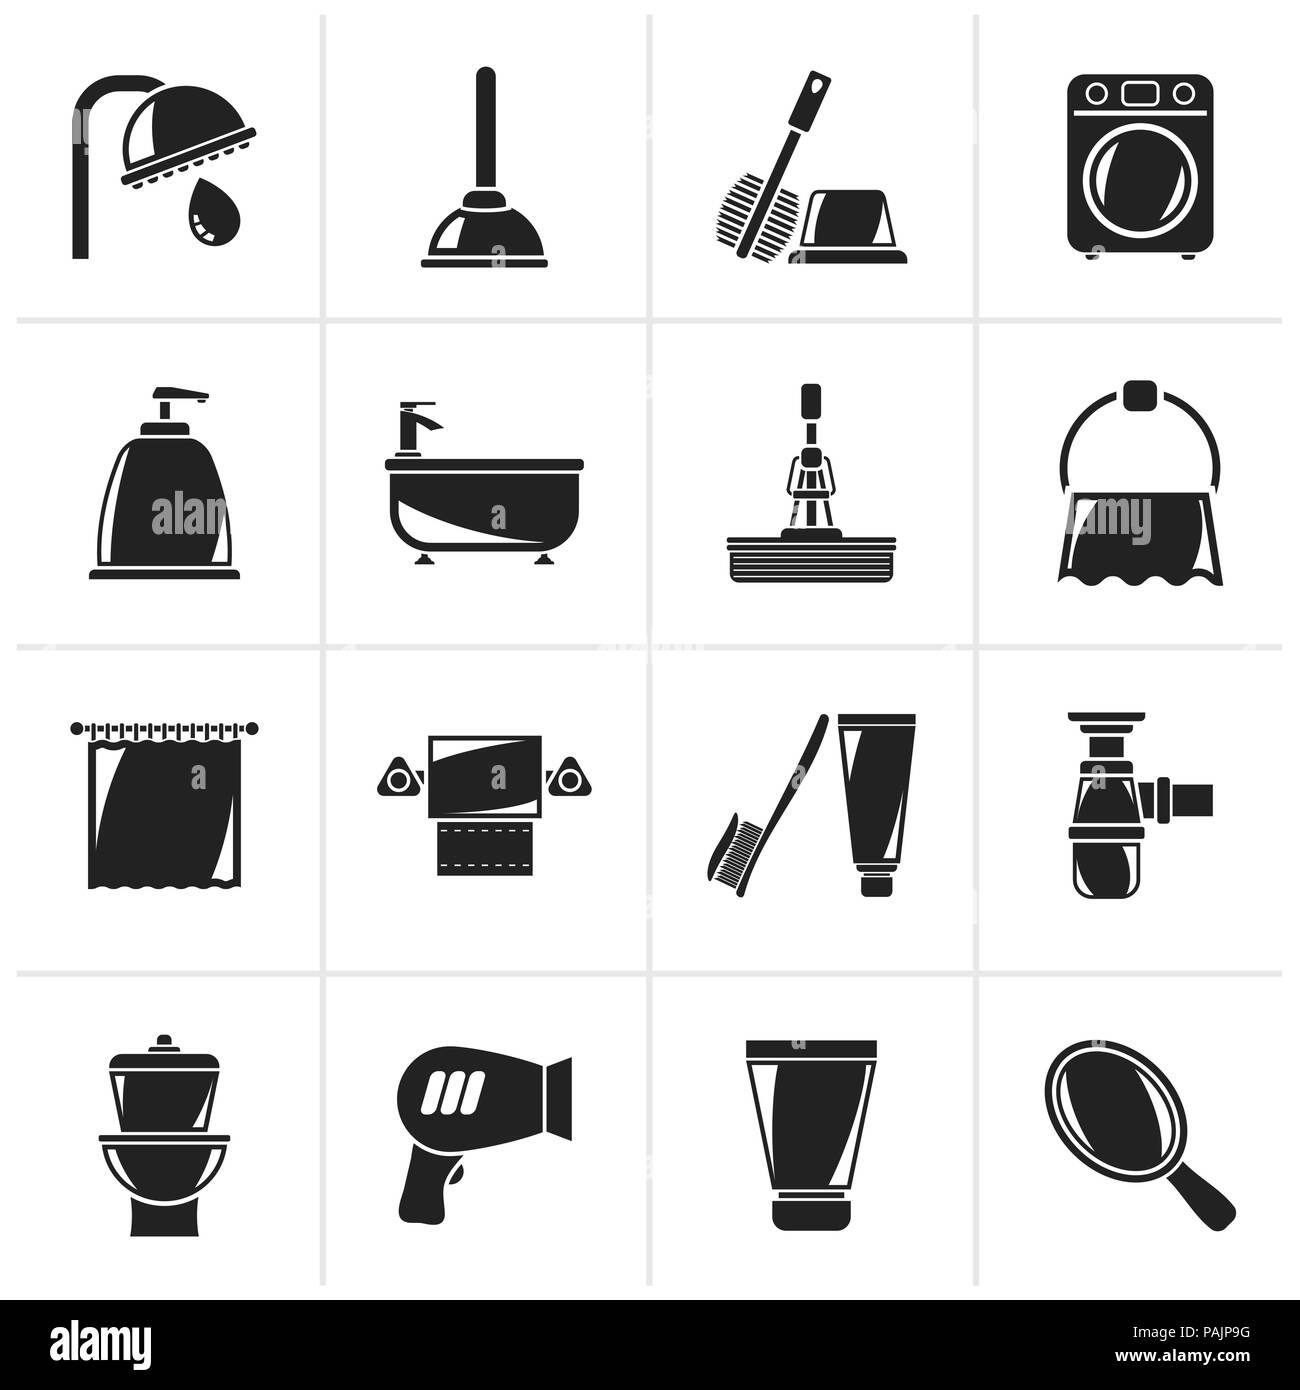 Black Bathroom and hygiene objects icons -vector icon set - Stock Image